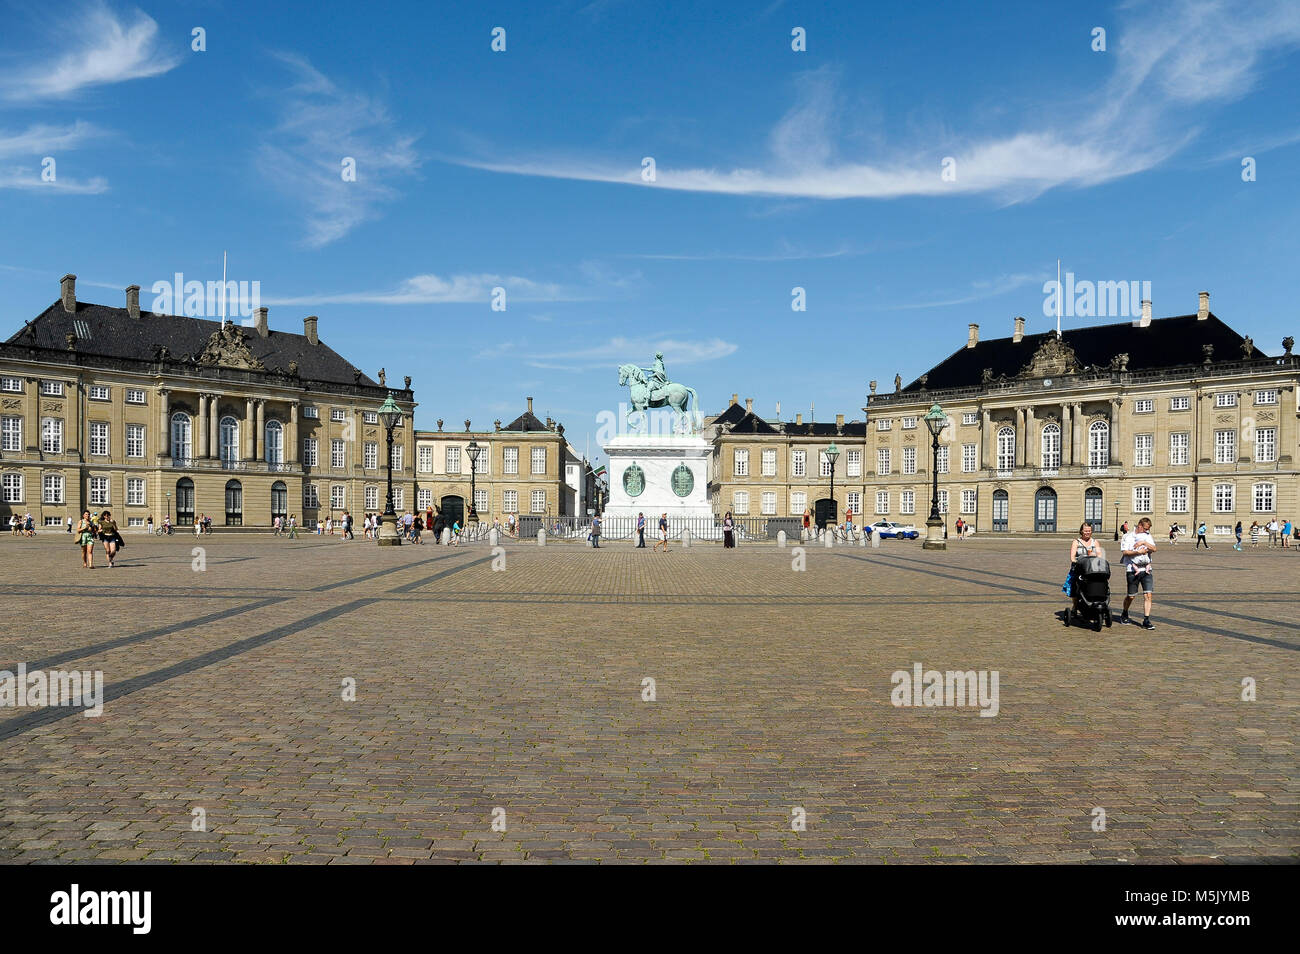 Rococo Christian VIII's Palae or Levetzaus Palae (Christian VIII's Palace or Levetzau's Palace), equestrian statue Stock Photo